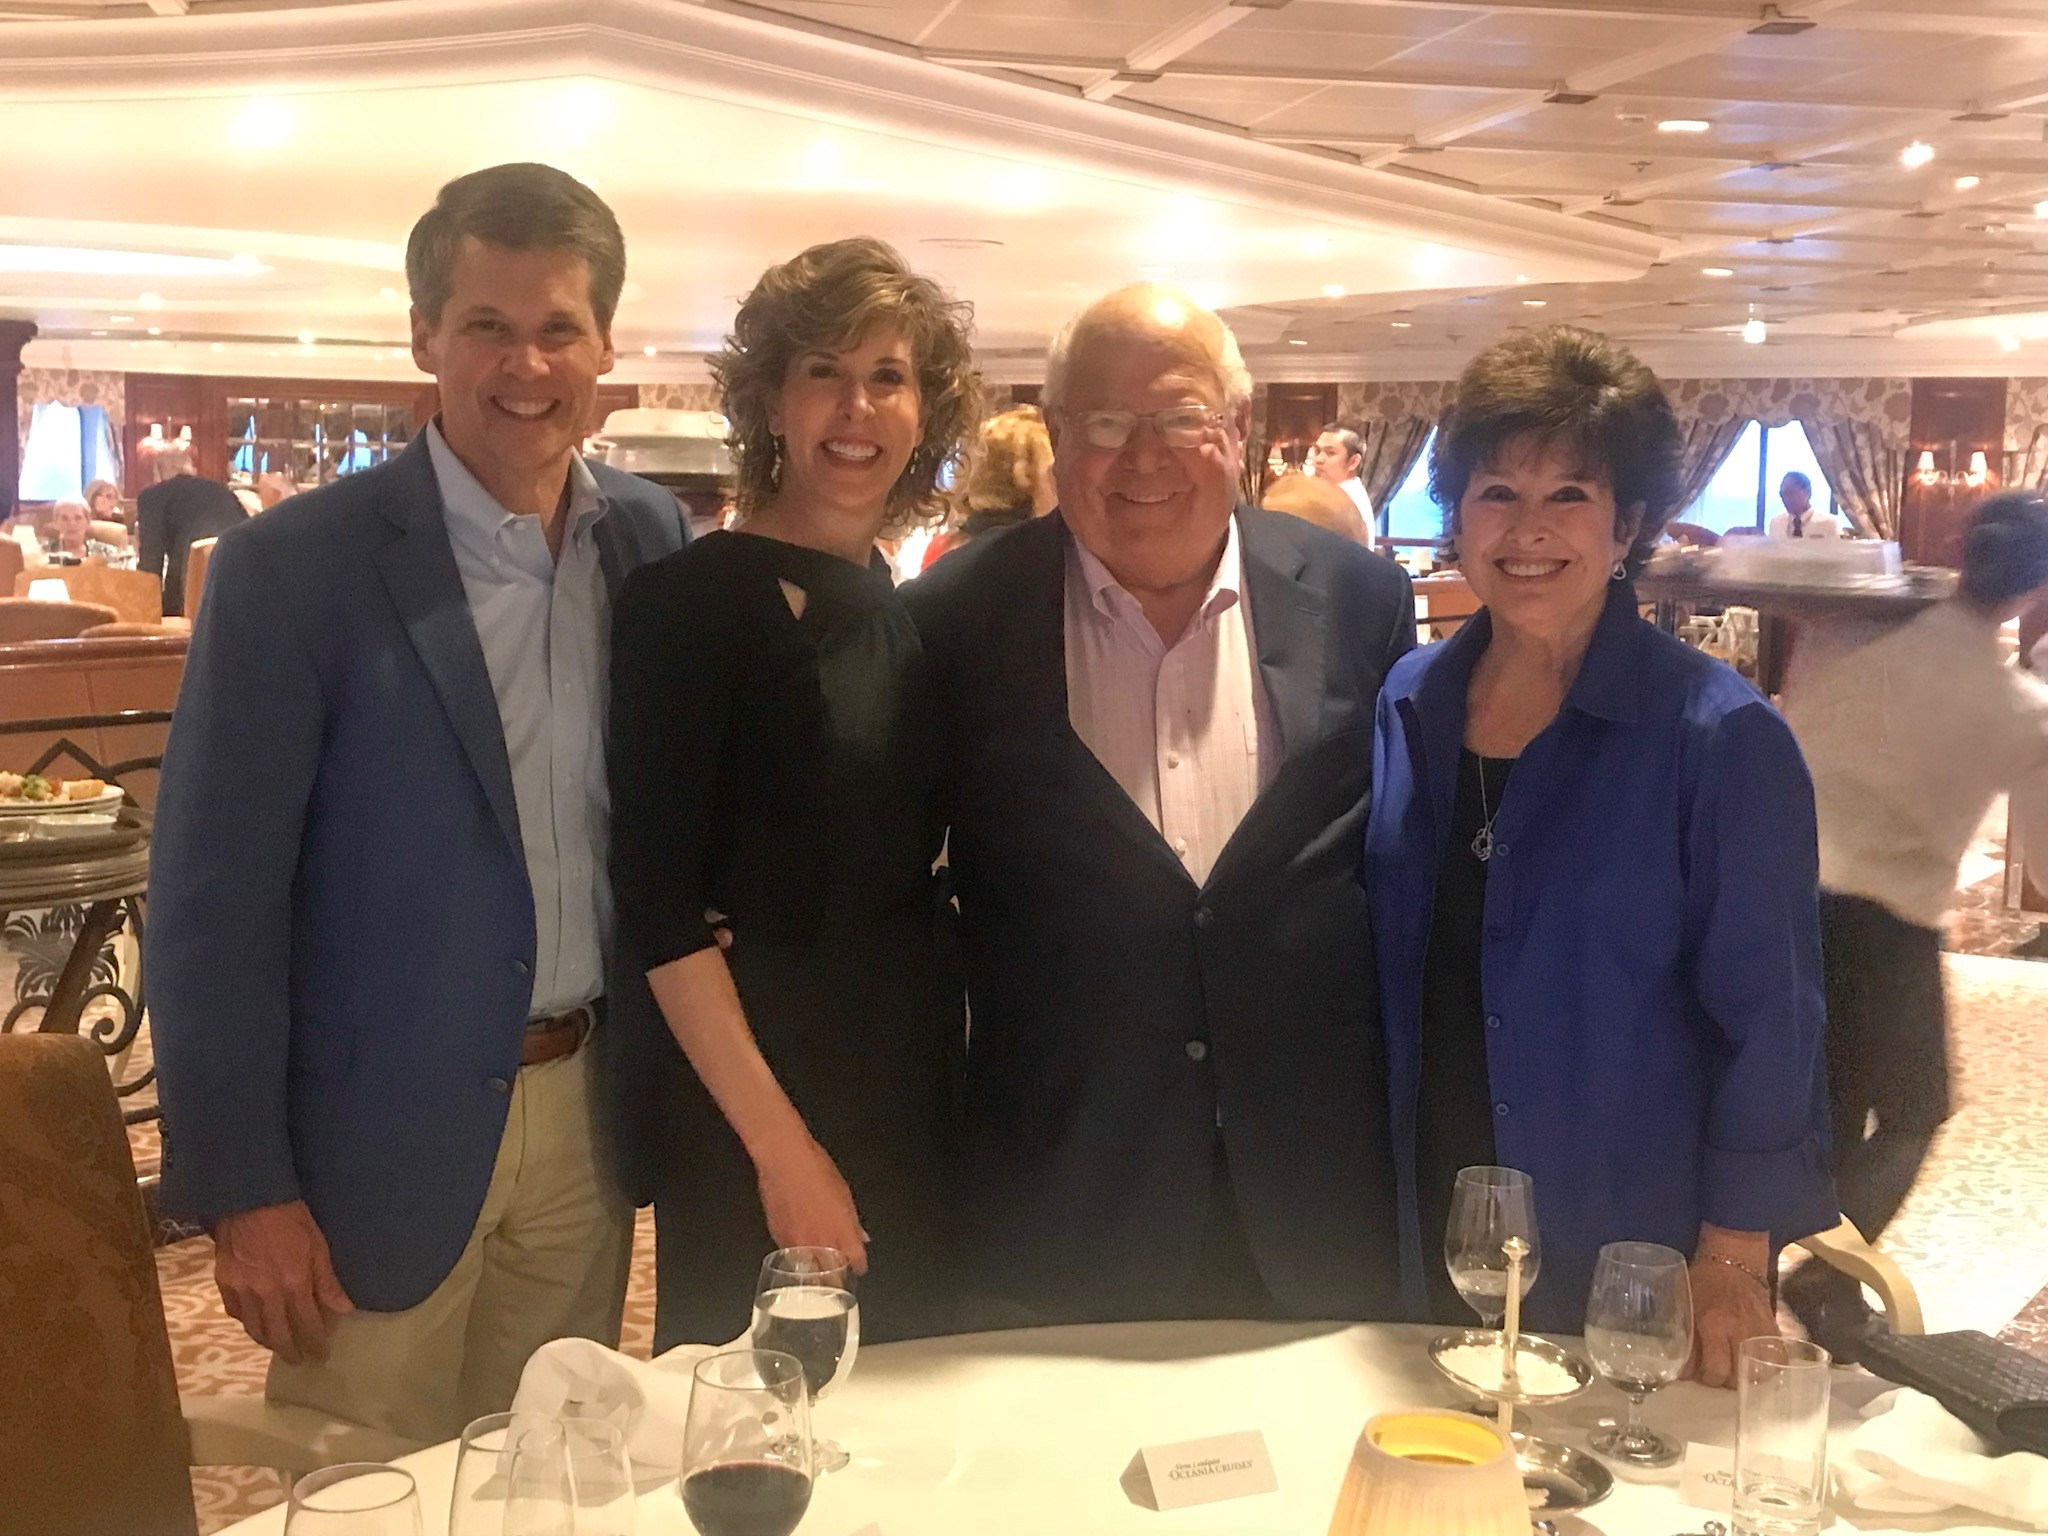 four people posing in the dining room on a cruise ship